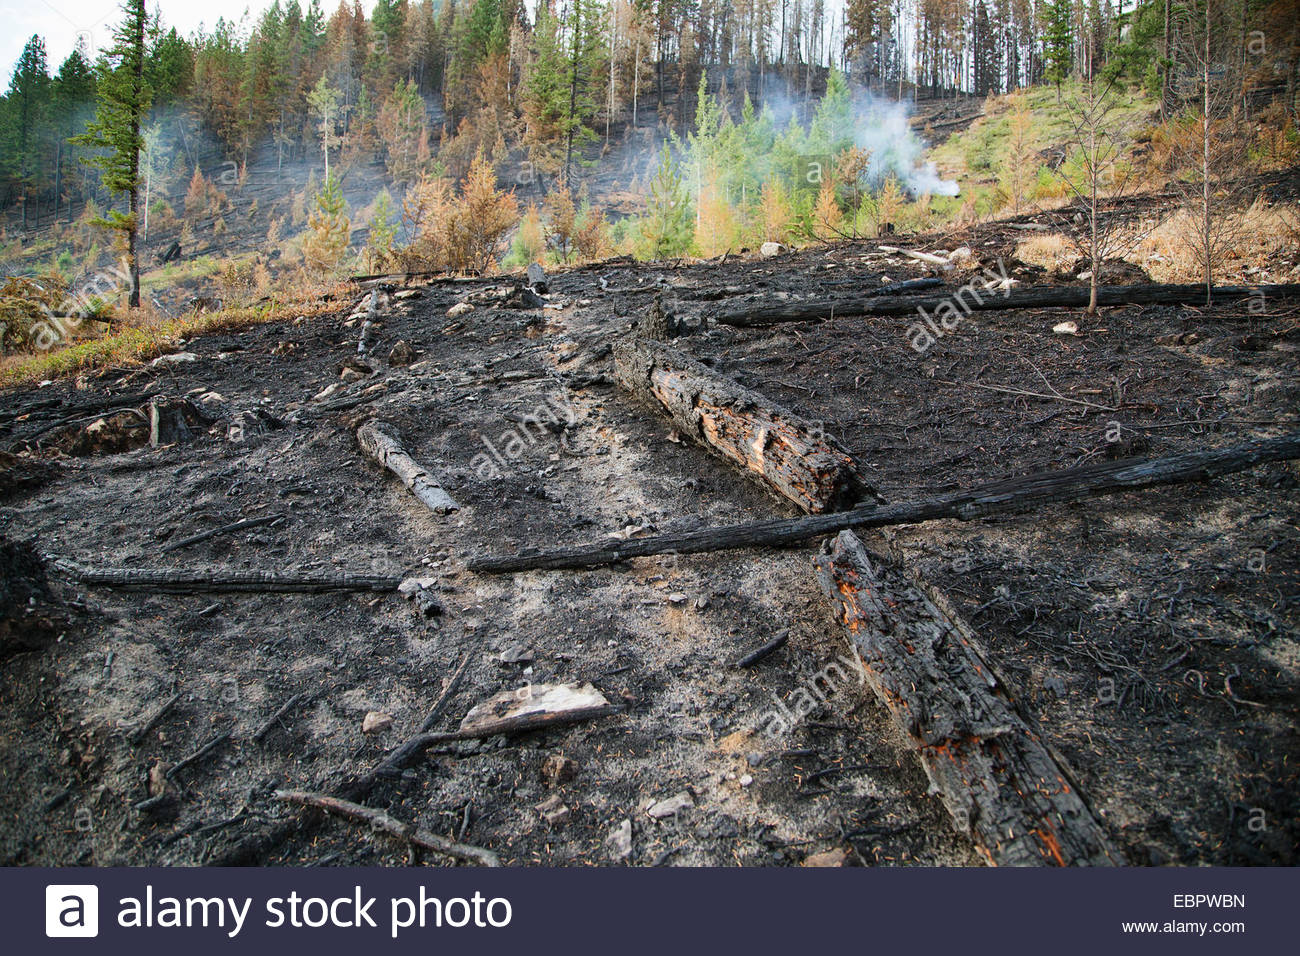 Burnt ground due to forest fire damage - Stock Image